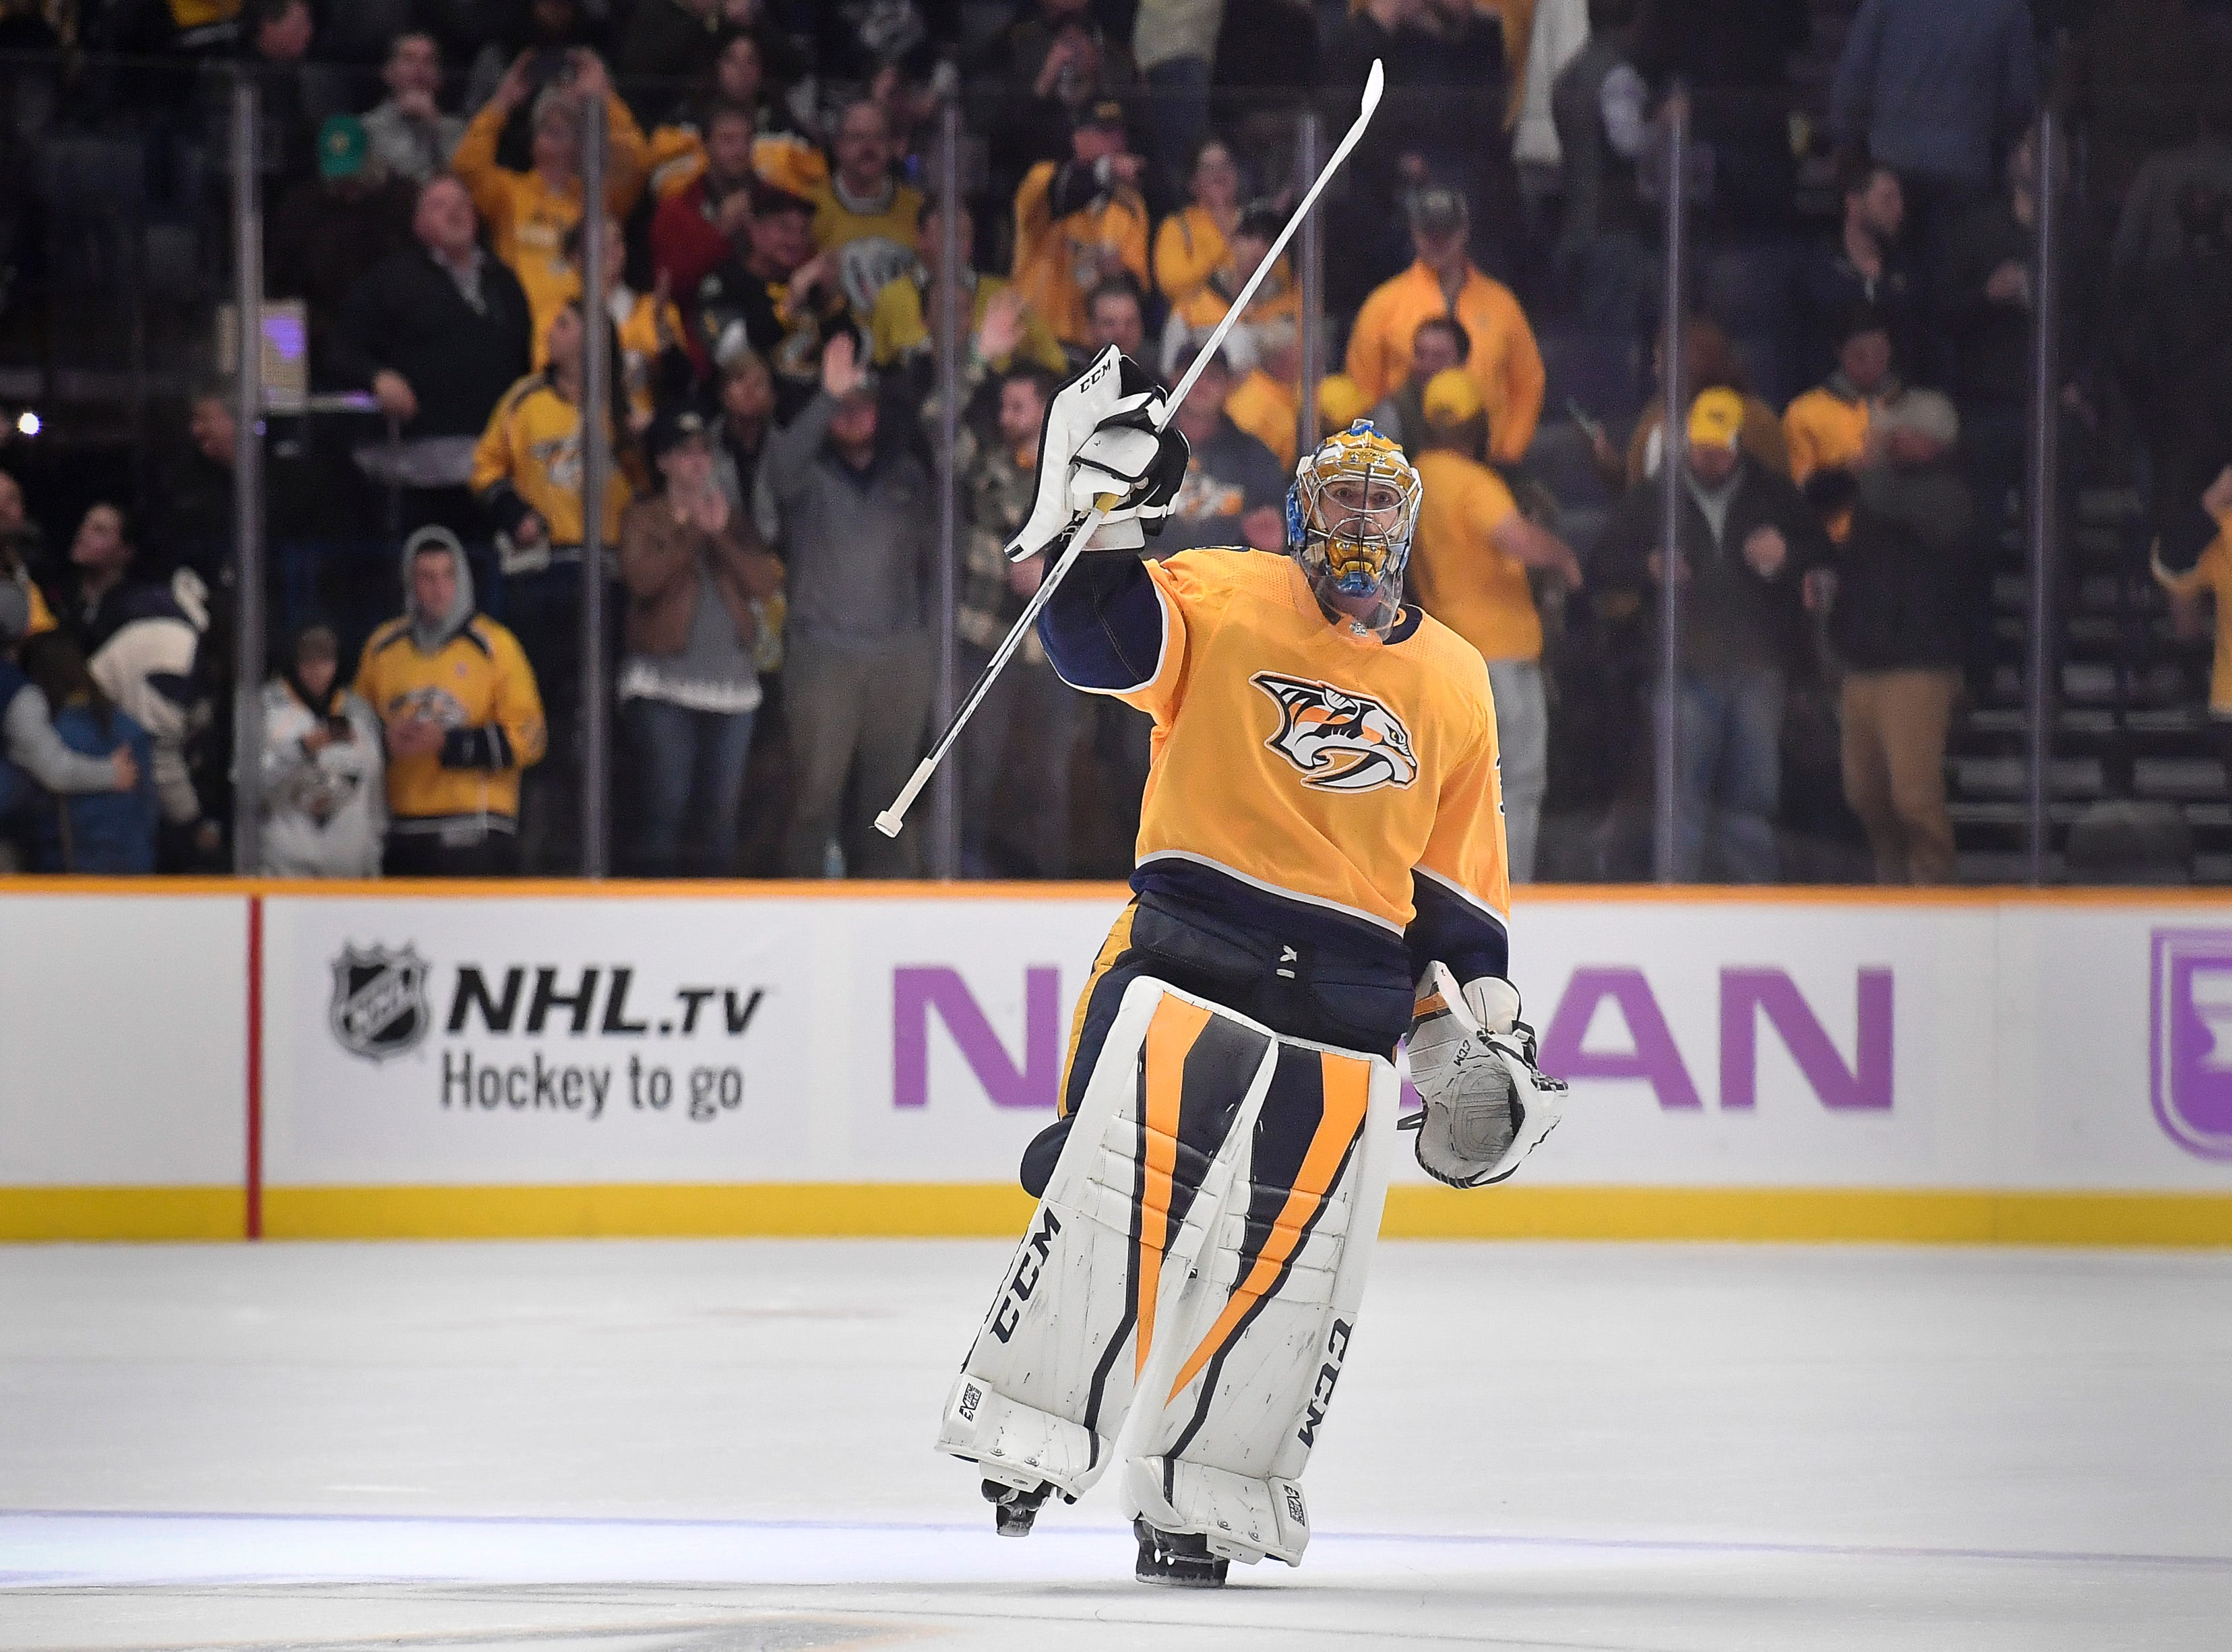 Nov. 3: Predators 1, Bruins 0 -- Predators goaltender Pekka Rinne (35) salutes the crowd after his 1 to 0 win against the Bruins at Bridgestone Arena Saturday, Nov. 3, 2018, in Nashville, Tenn.